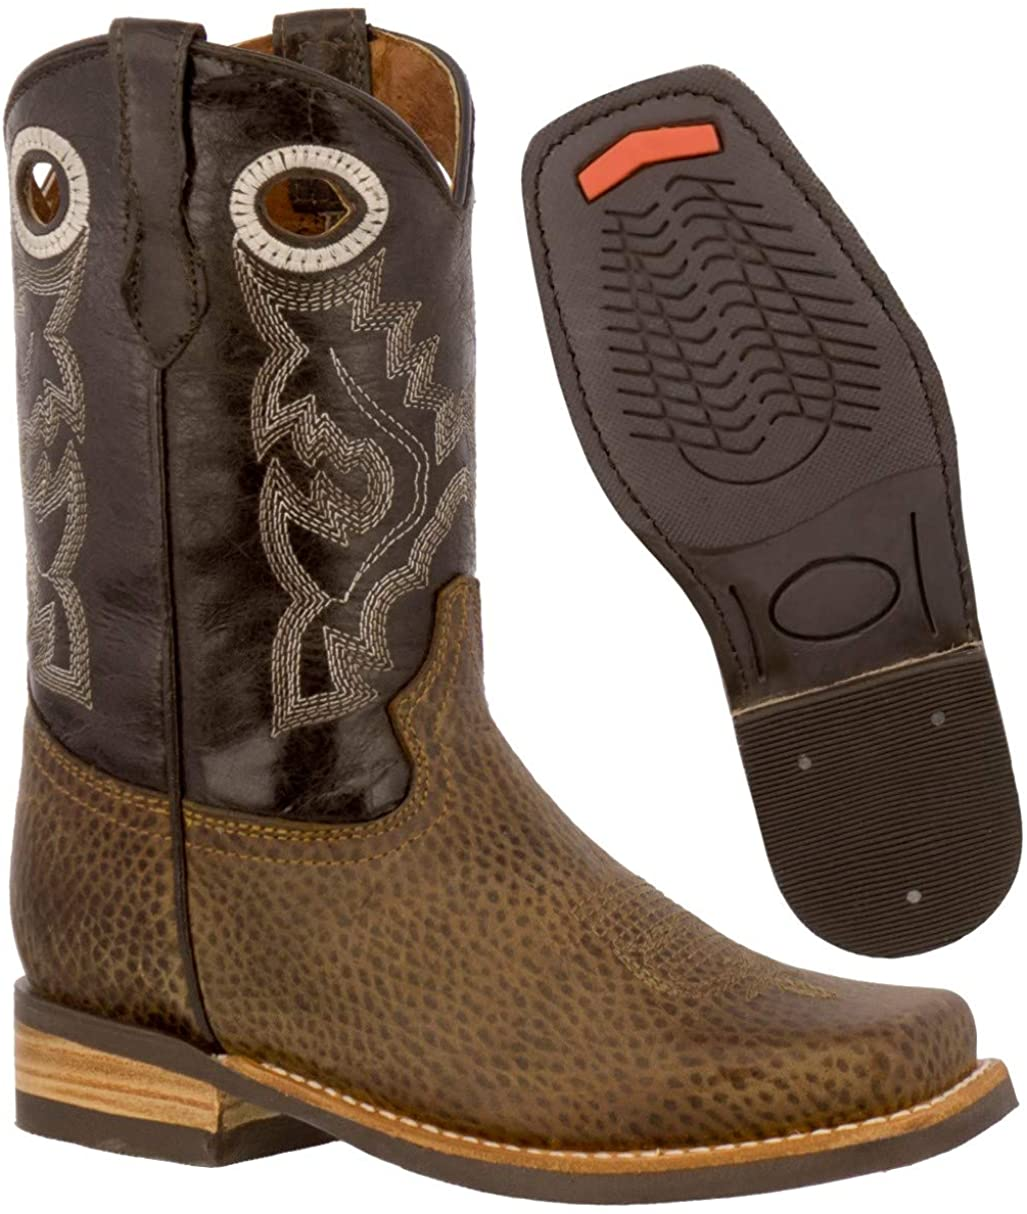 Kids Rustic Brown Western Cowboy Boots Grain Leather Square Toe 10 Toddler